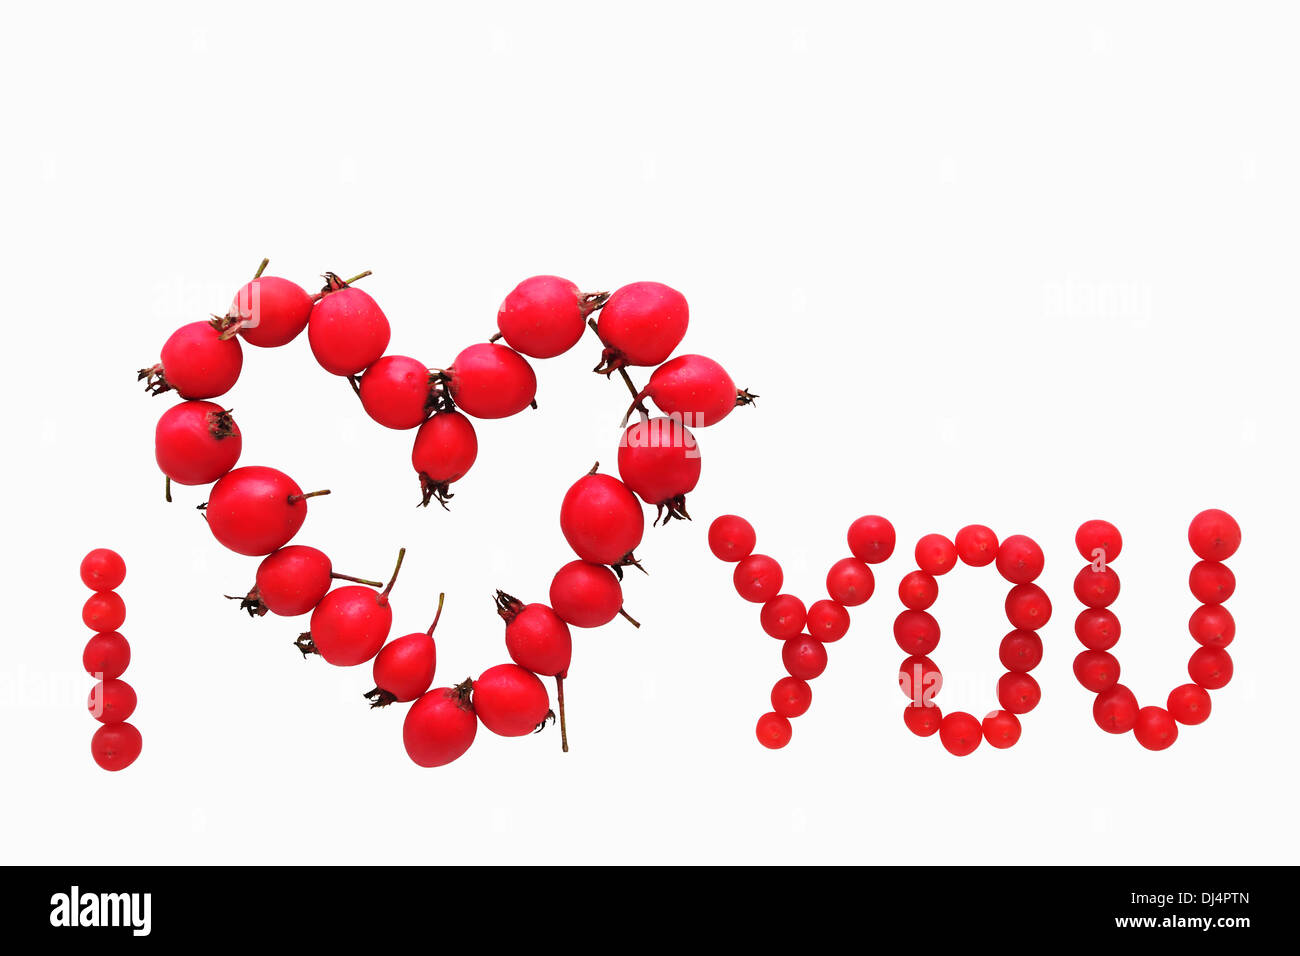 Valentine card concept. Red yew and hawthorn fruits forming I love you message, isolated on white background. - Stock Image